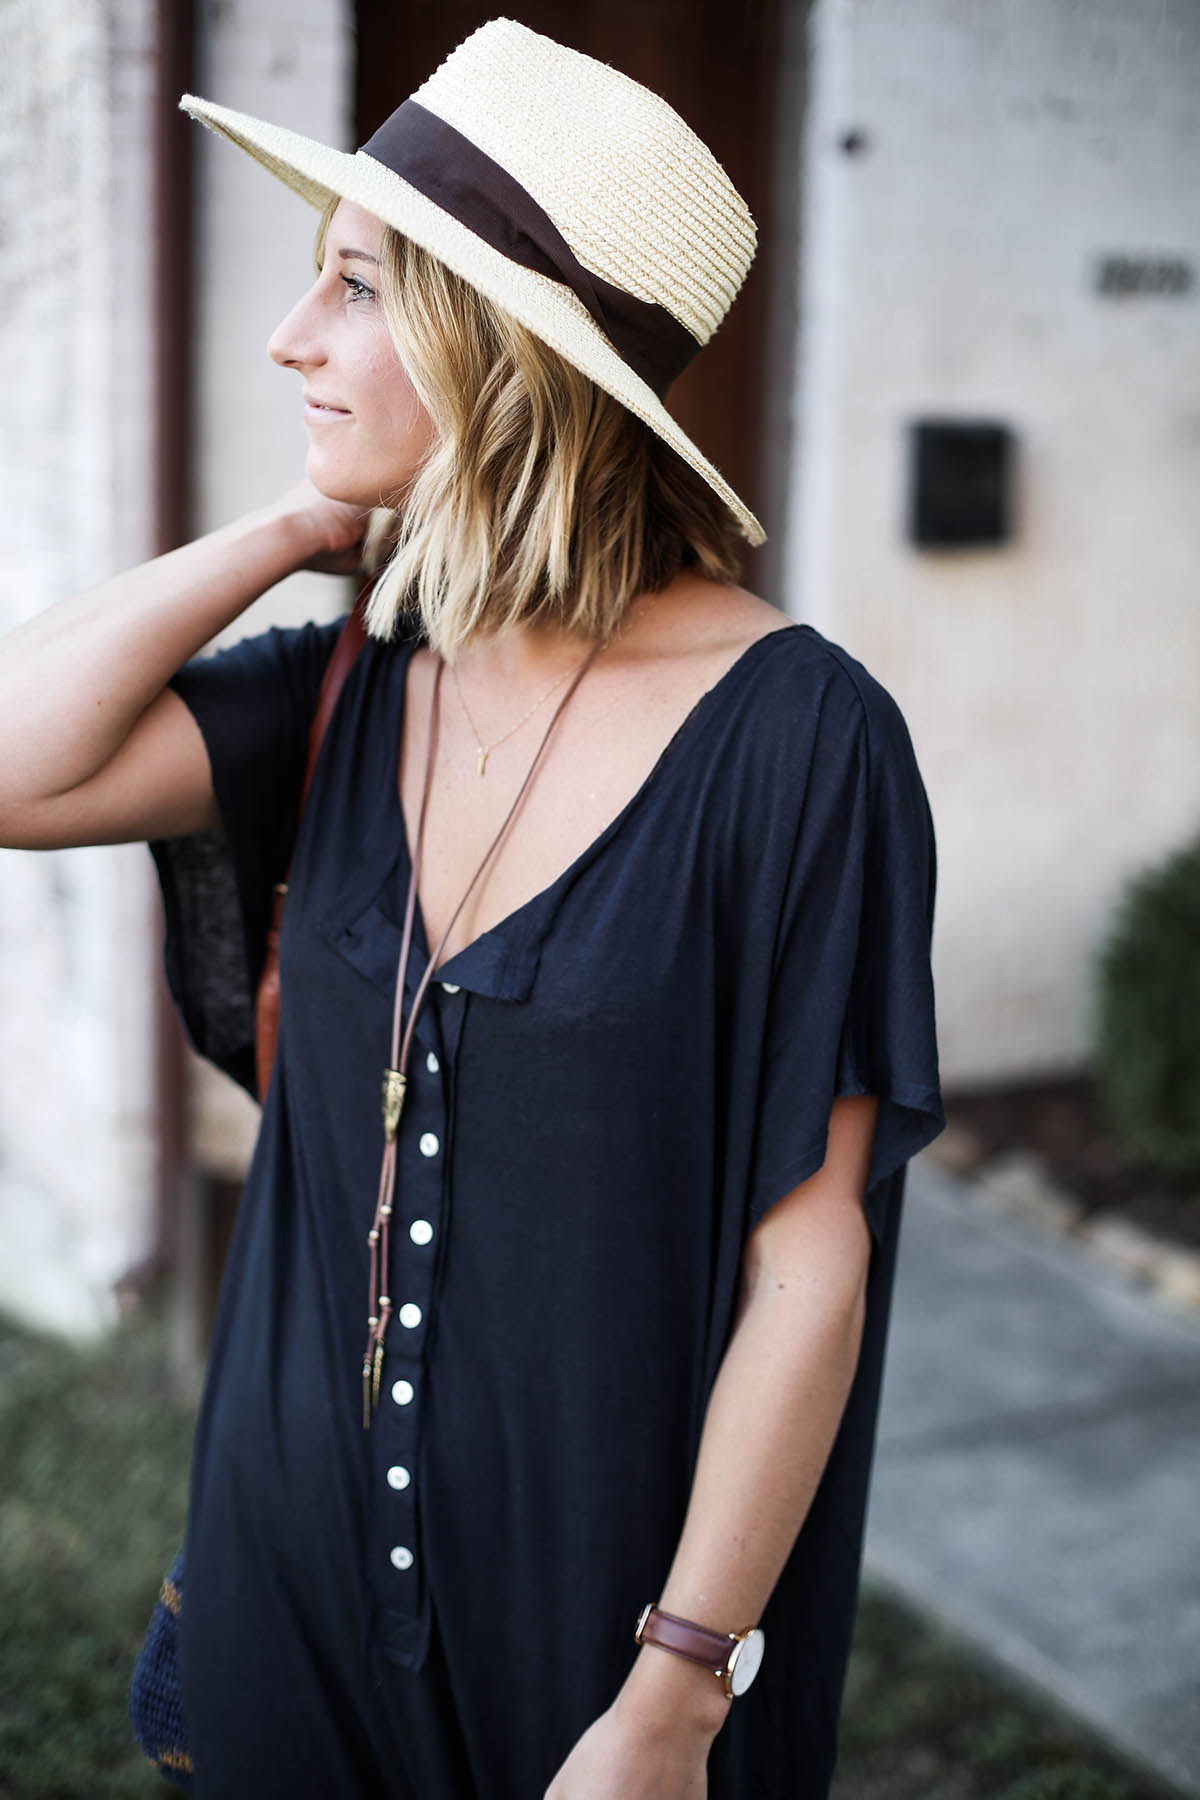 free people marrakesh oversized maxi dress outfit and brixton hat